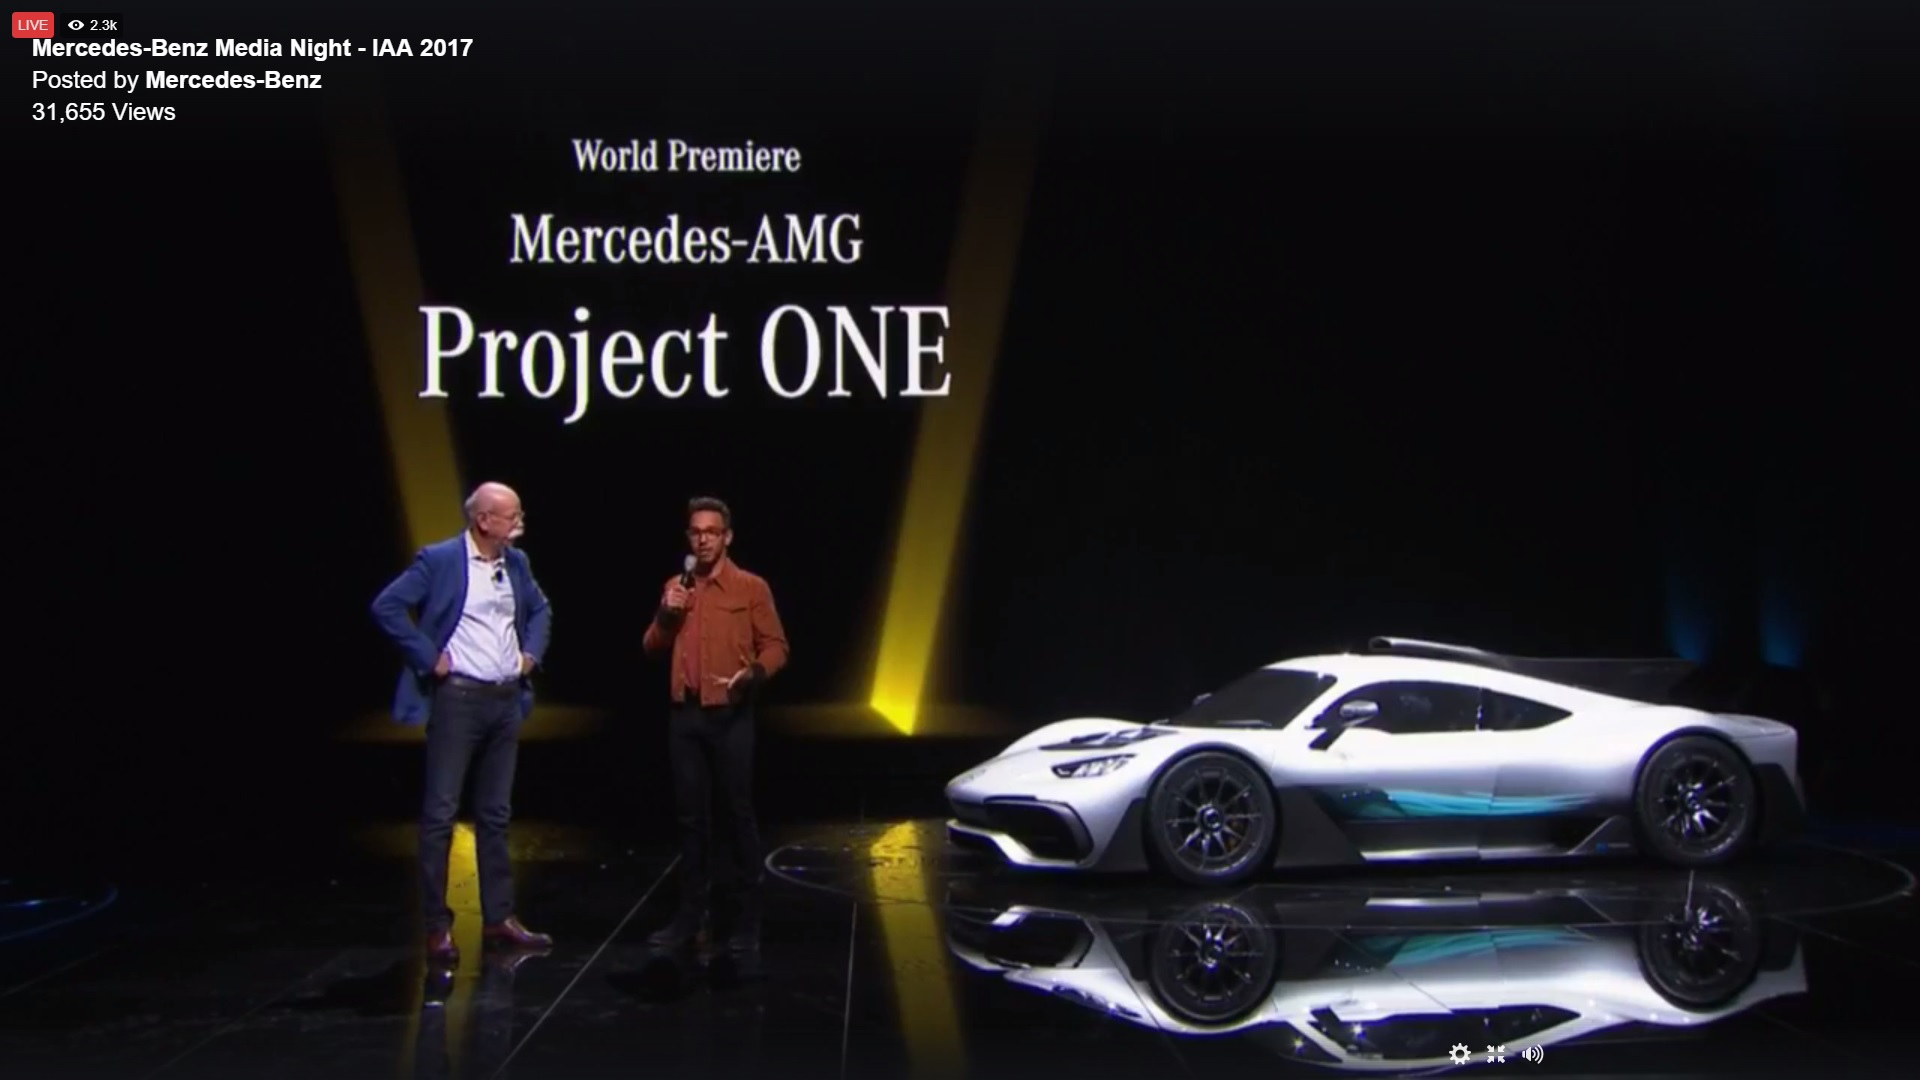 https://pictures.topspeed.com/IMG/jpg/201709/mercedes-amg-project-7.jpg